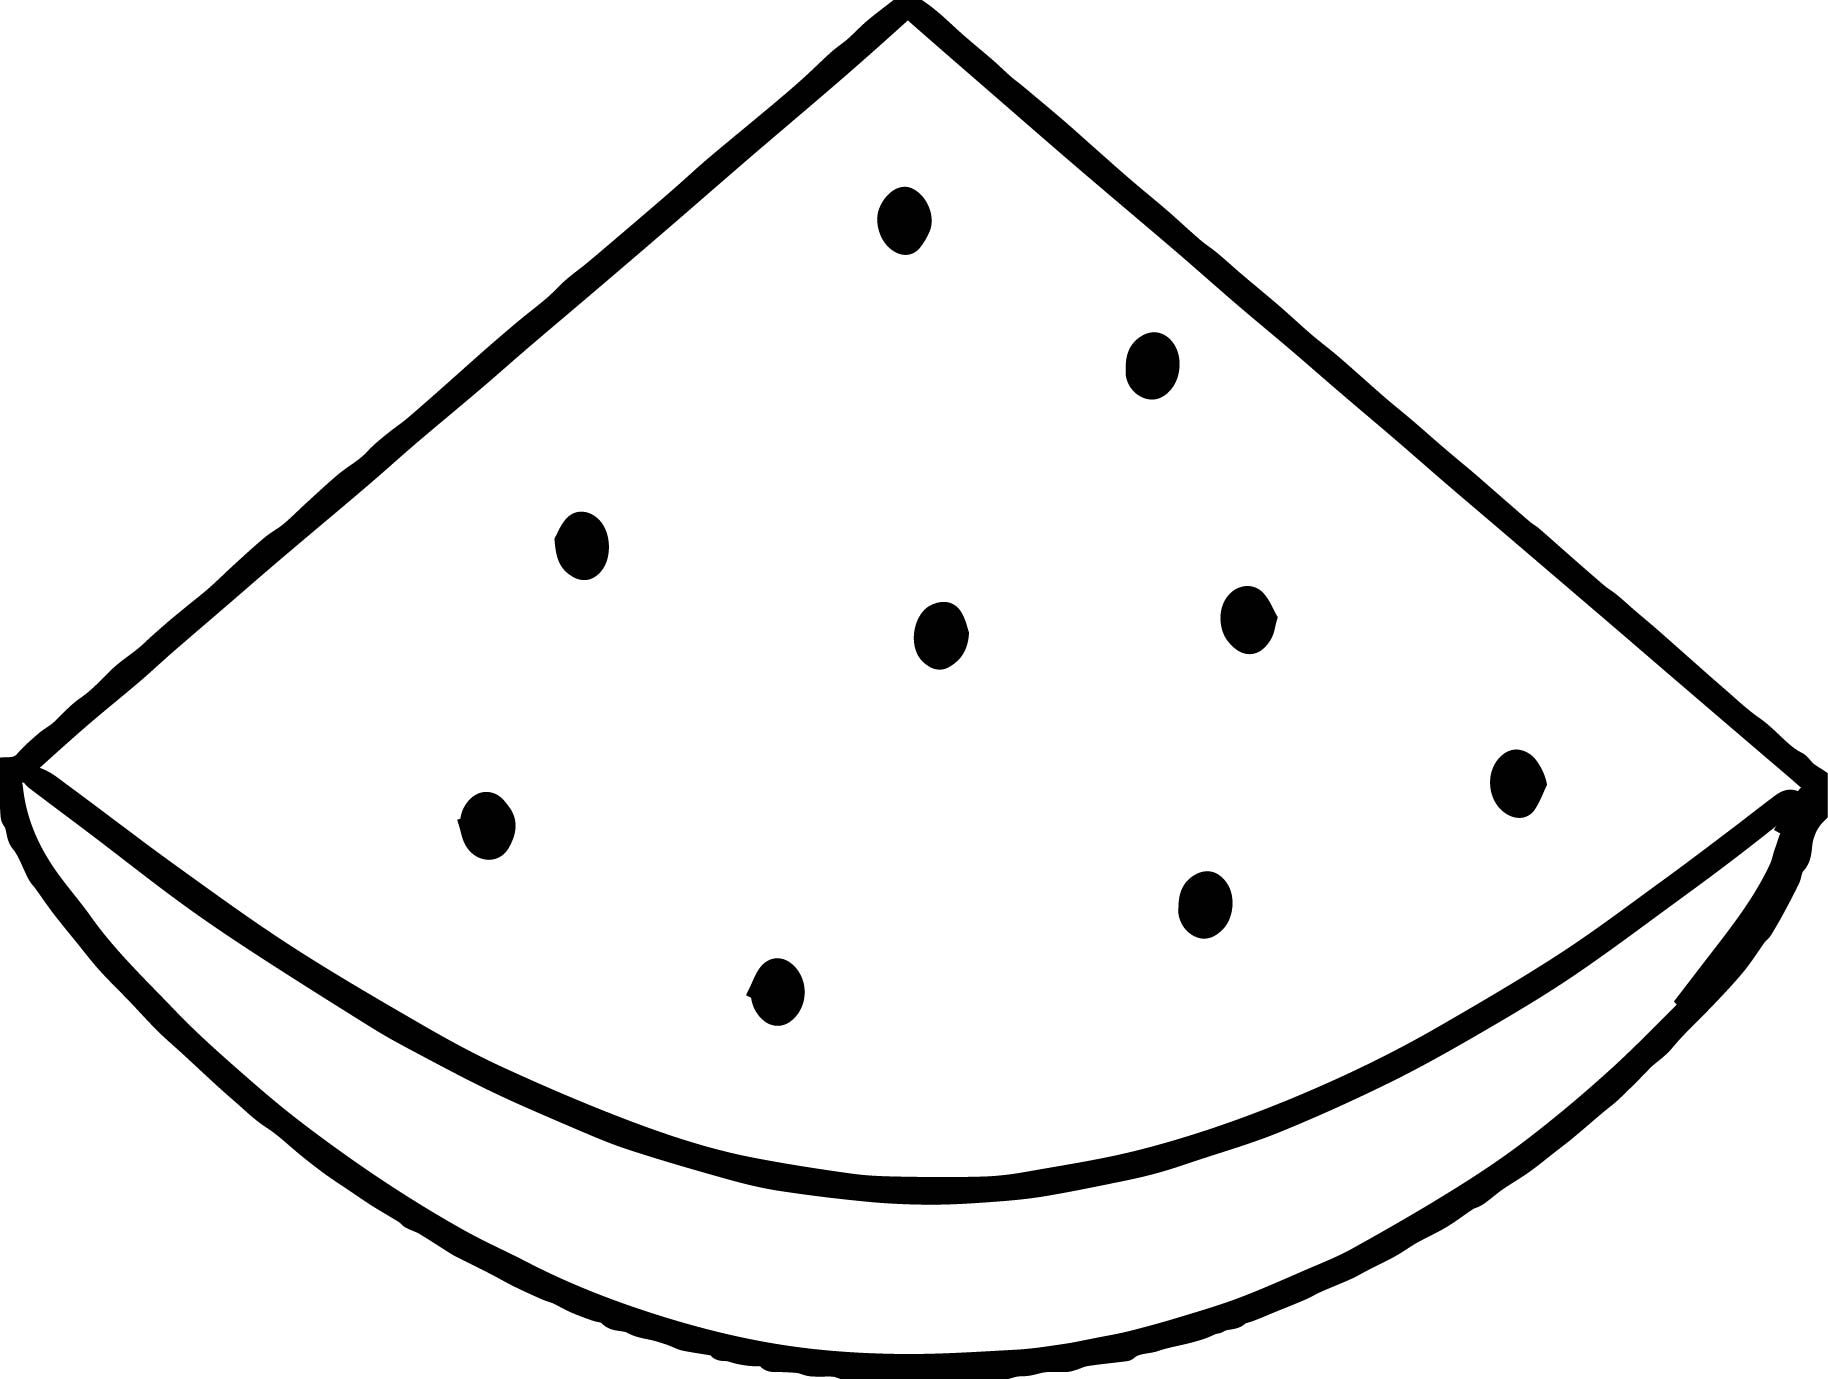 Awesome Watermelon Summer Quarter Coloring Page Coloring Pages Summer Watermelon Love Coloring Pages